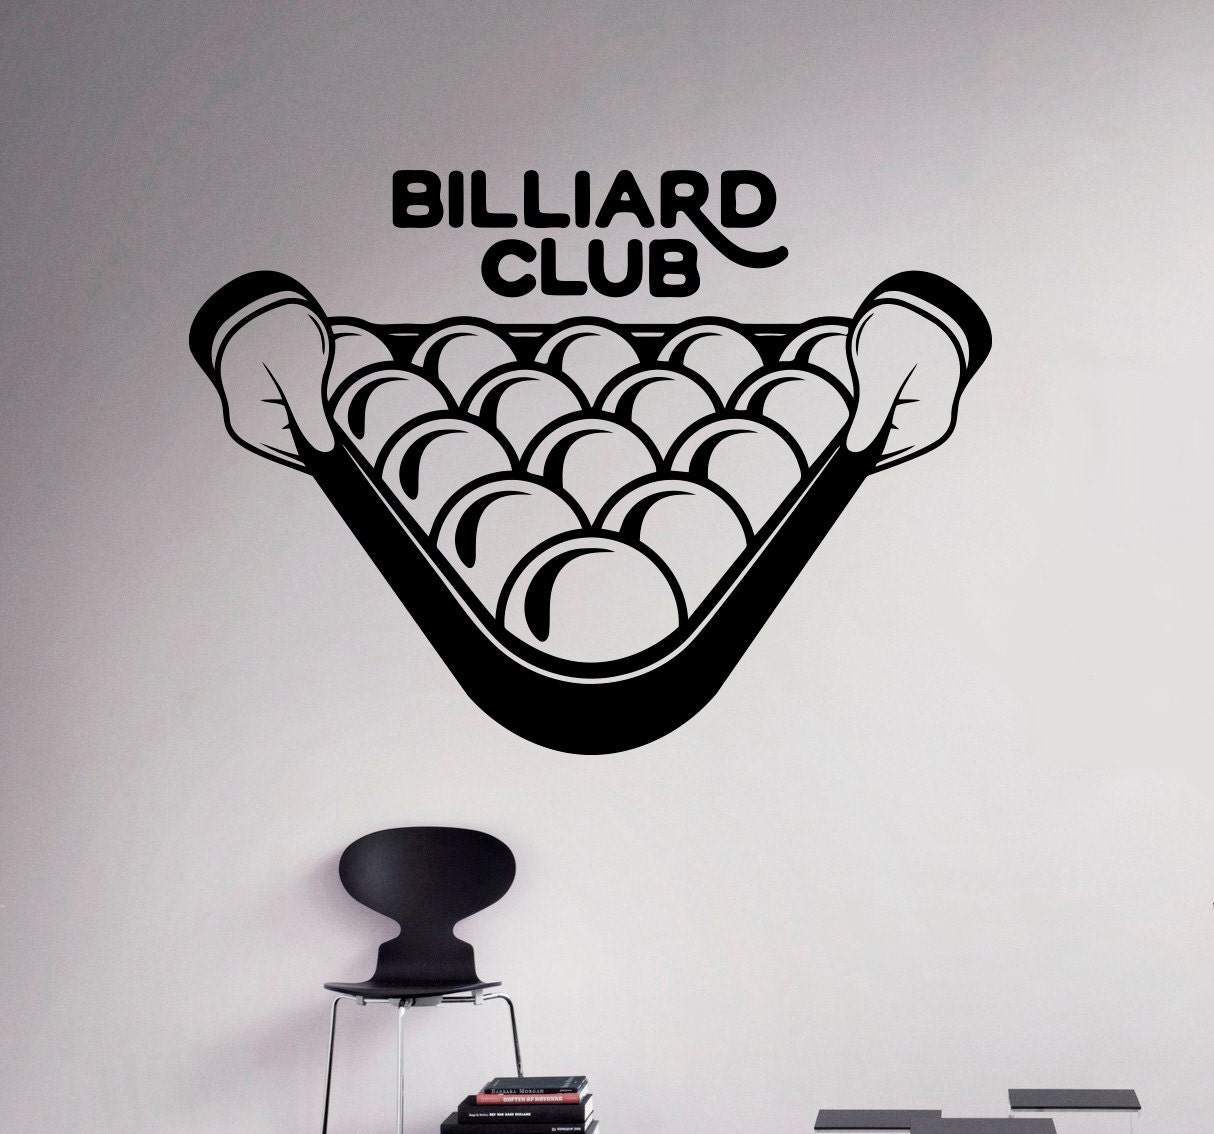 Pool billiard club wall decal poolroom vinyl sticker sport zoom amipublicfo Images